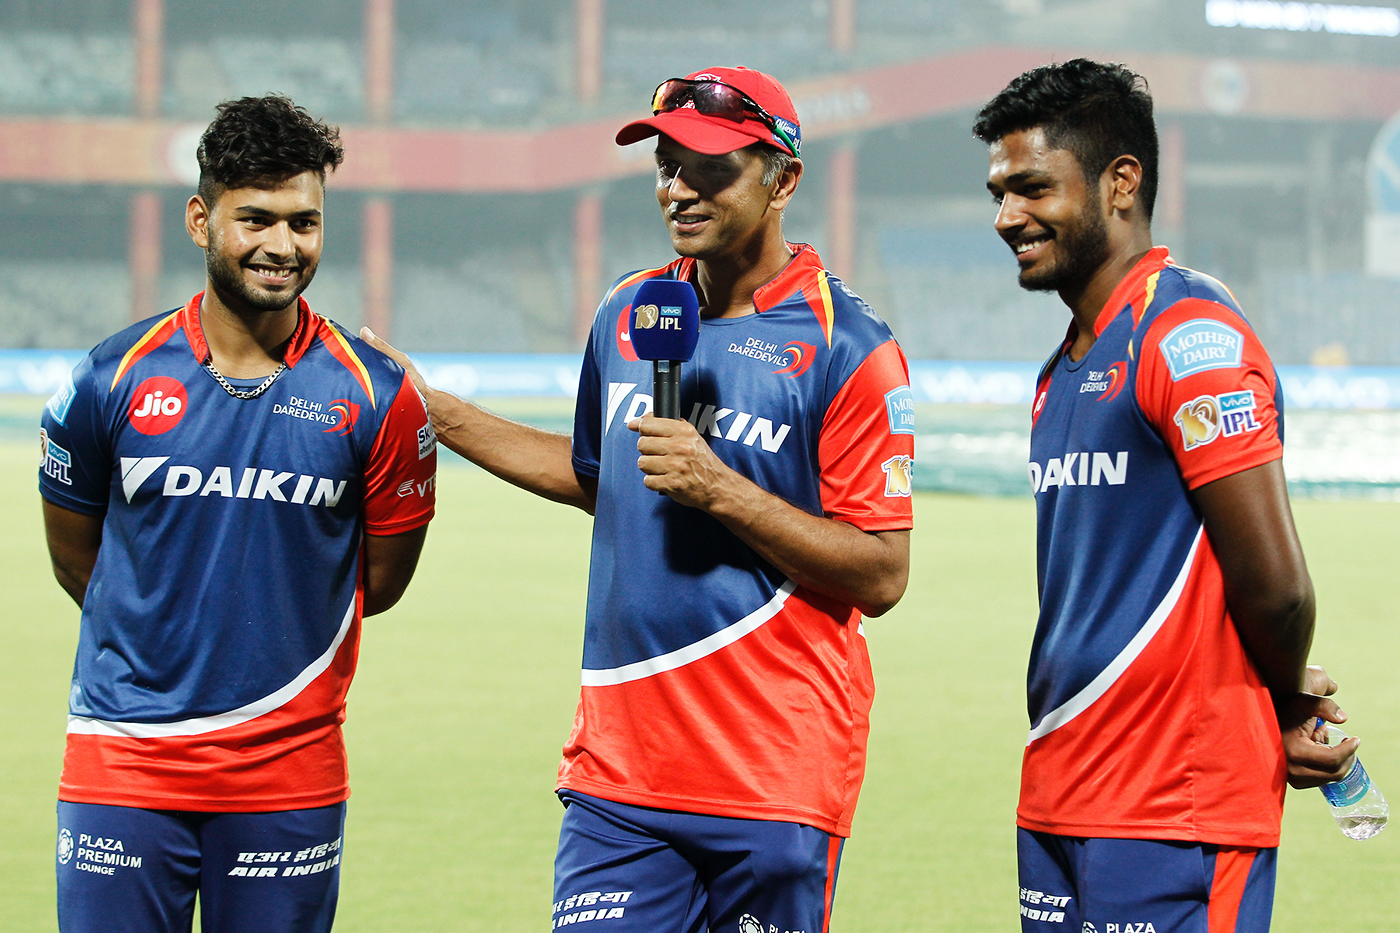 Made in the IPL: the tournament has been a crucible for Indian talent, throwing up stars like Rishabh Pant and Sanju Samson (seen here with Rahul Dravid in 2017)